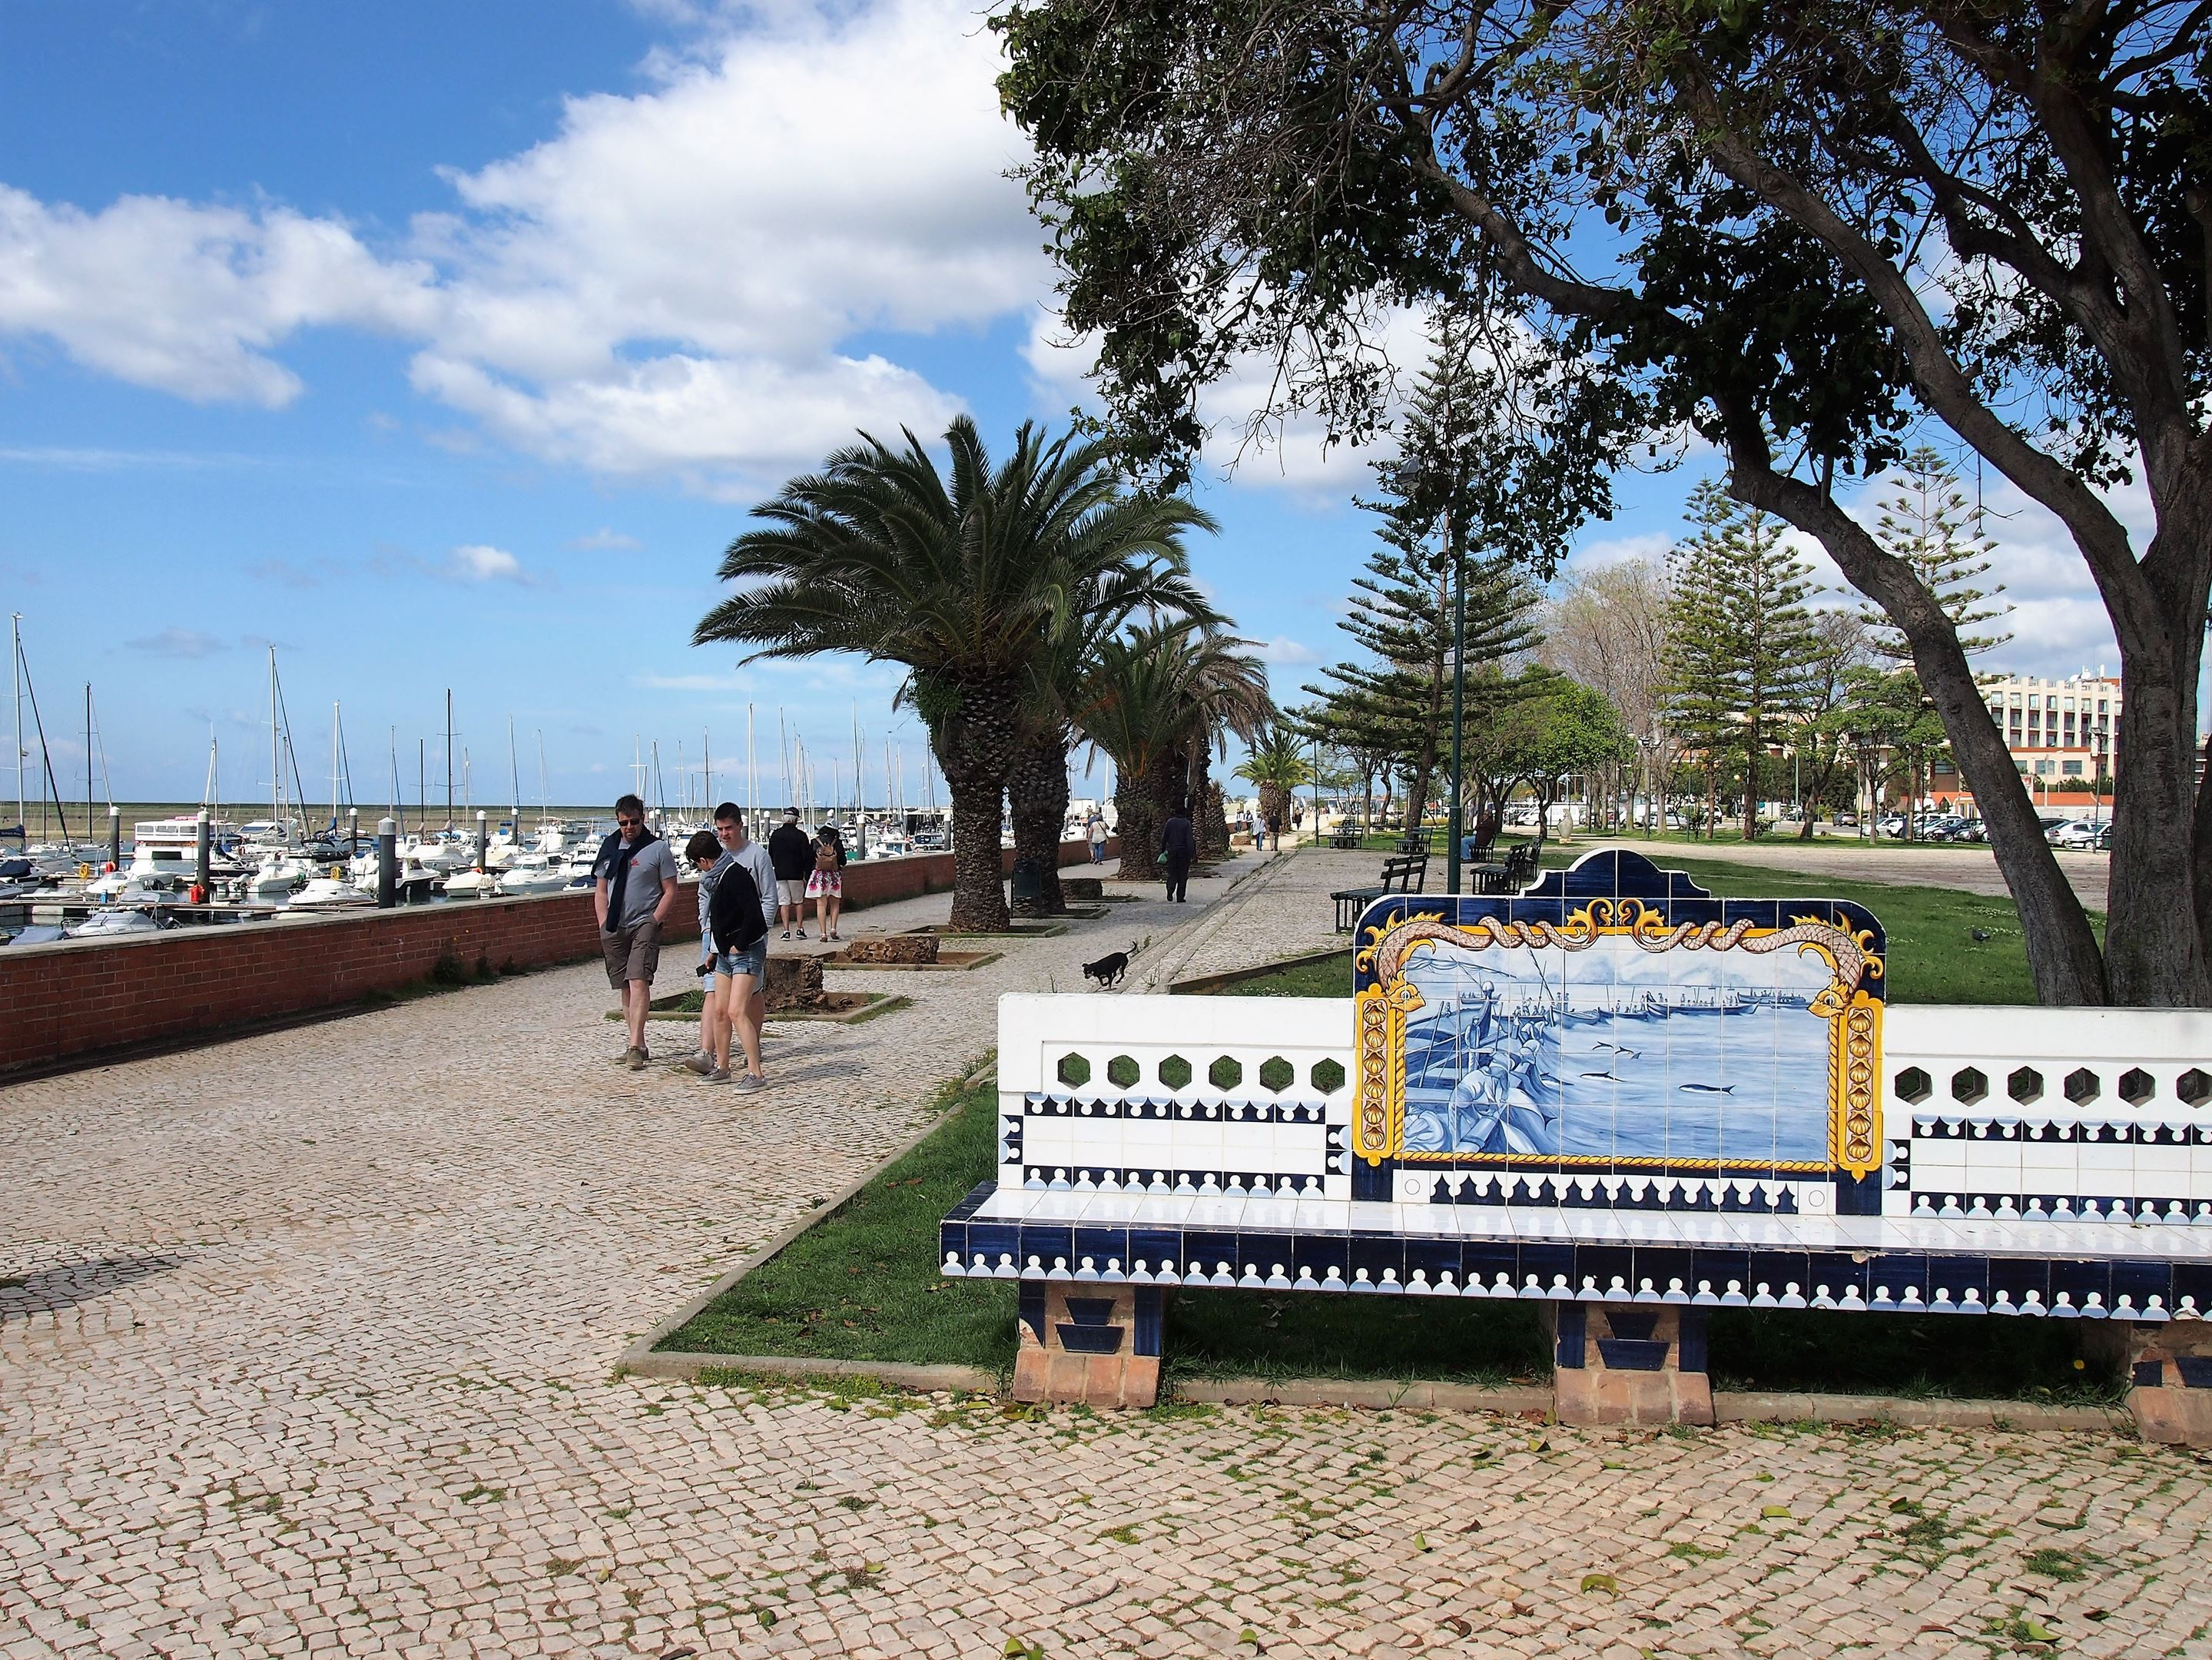 The promenade along the waterfront at Olhão, Algarve